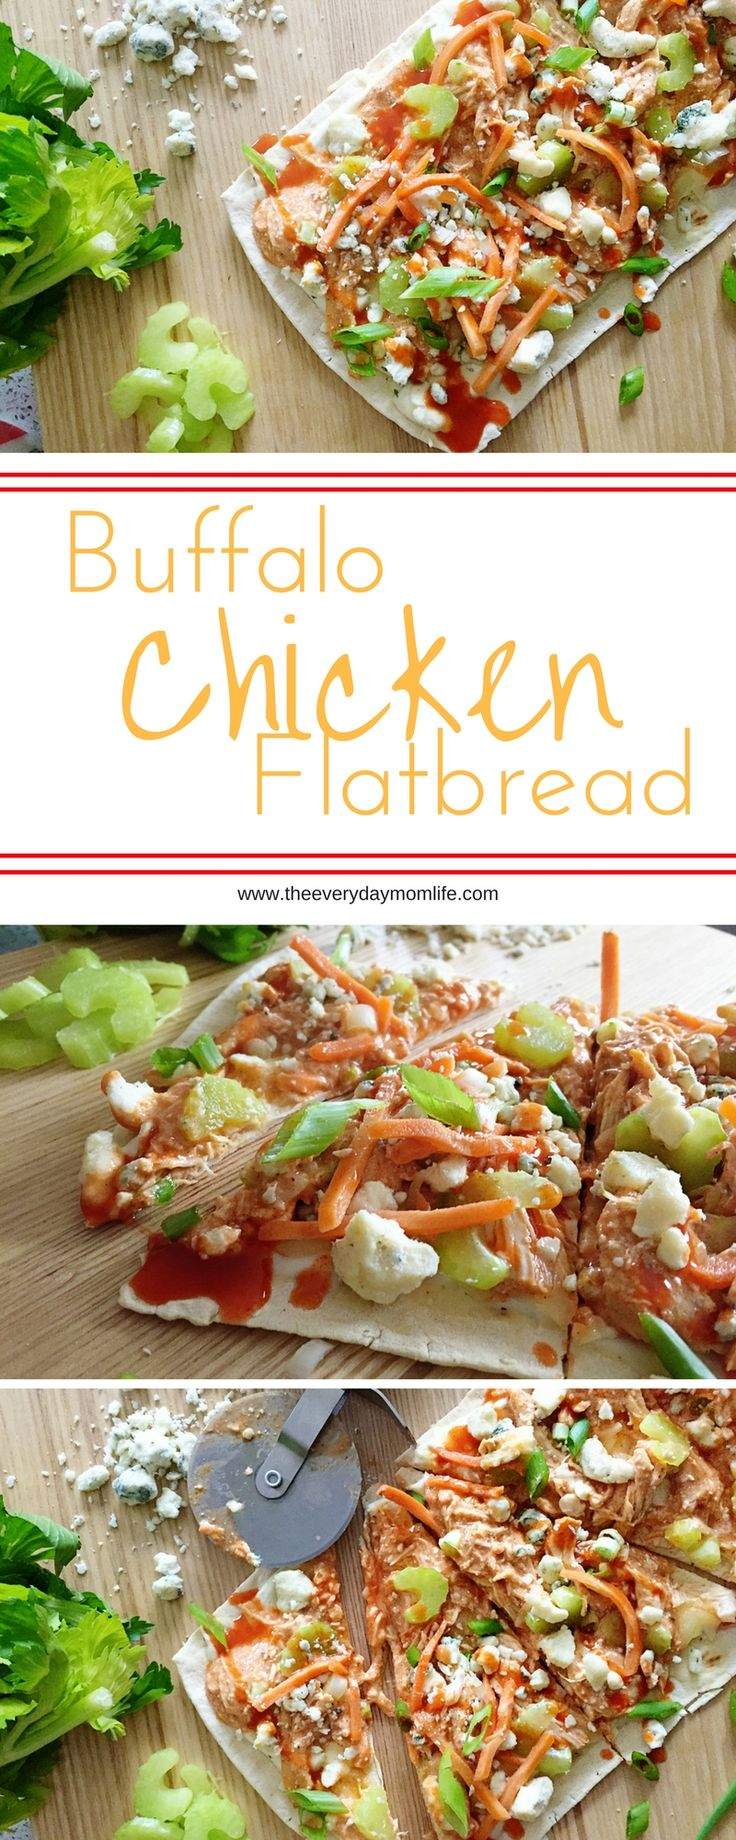 Buffalo Chicken Flatbread Recipe Puts A Kick Into Your Dinner Routine. This is a recipe the whole family will love and perfect for the weekend or an easy weeknight dinner.